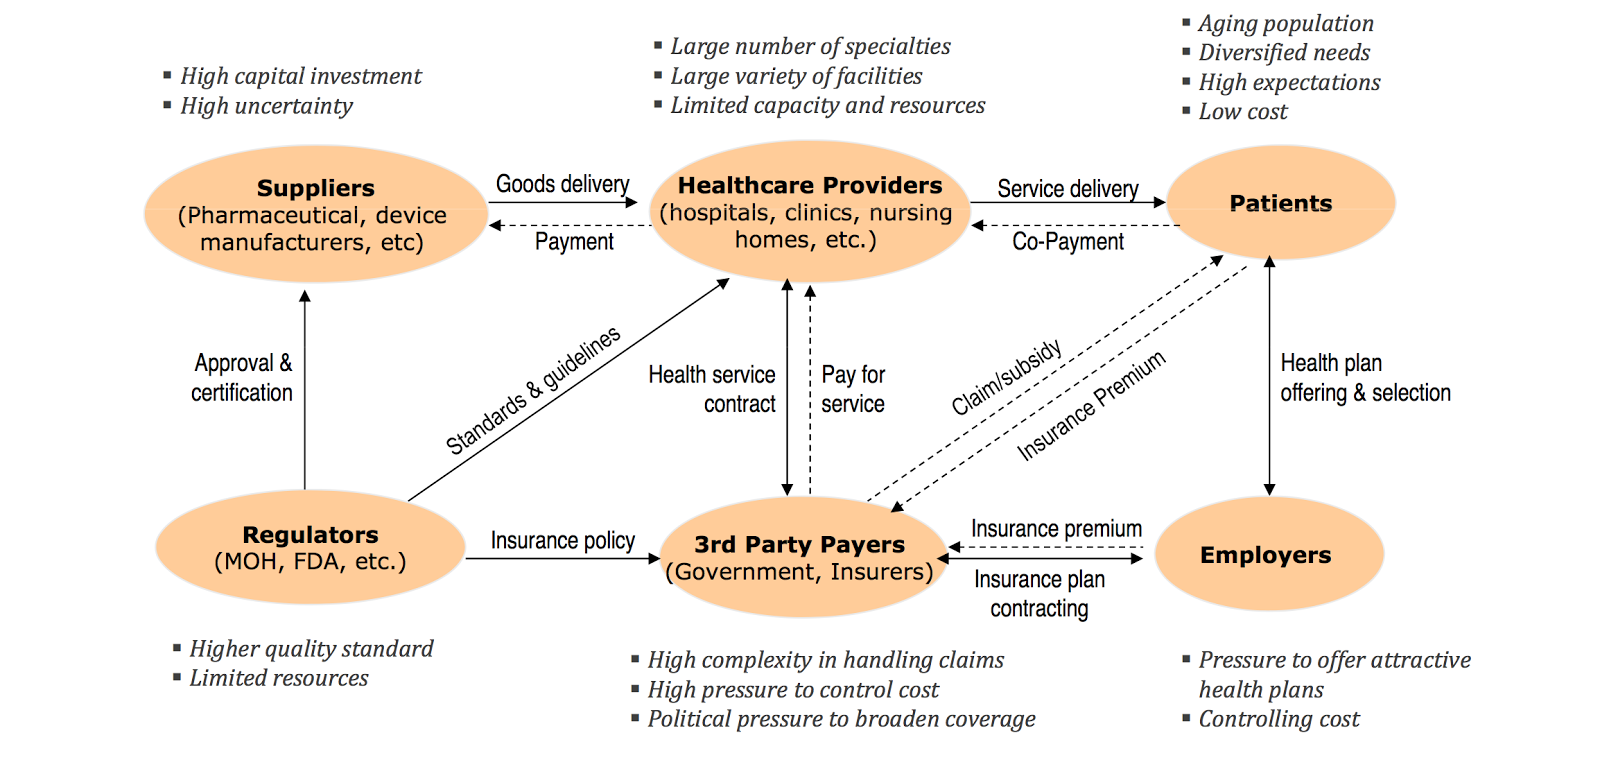 supply chain management healthcare mass customization and supply chain management